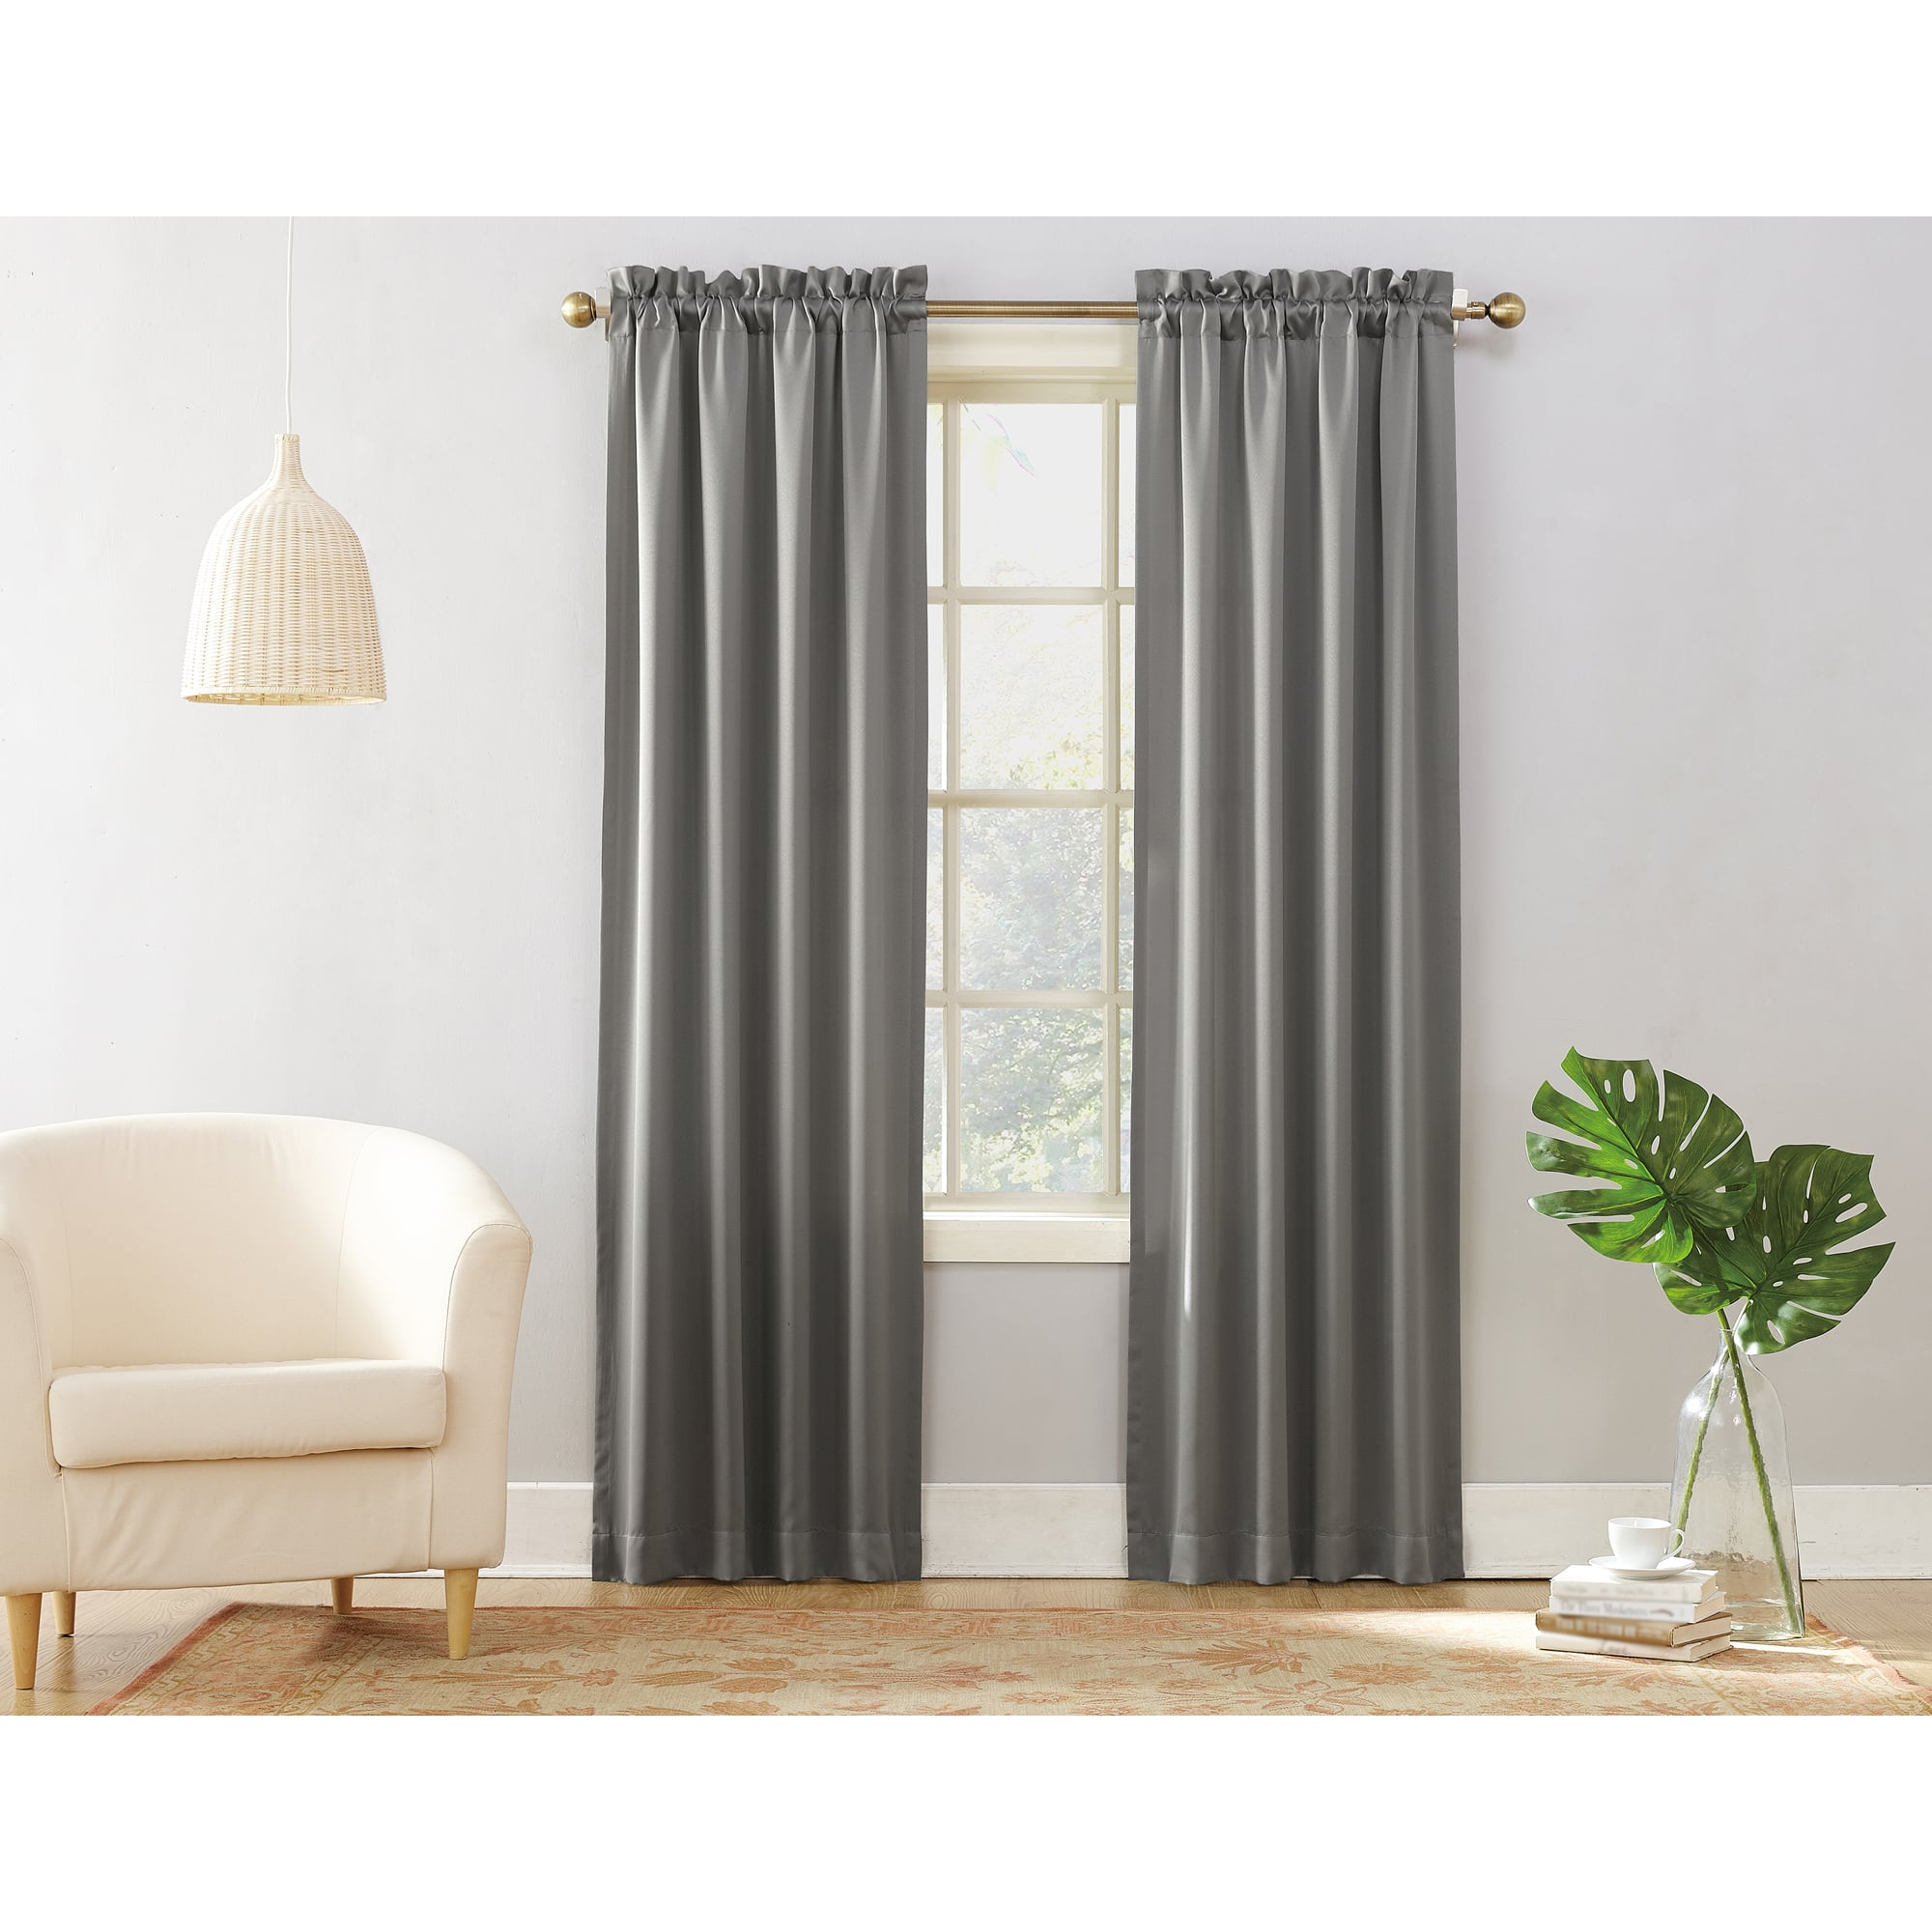 Curtain Deals No 918 Energy Room Darkening Energy Efficient Curtain